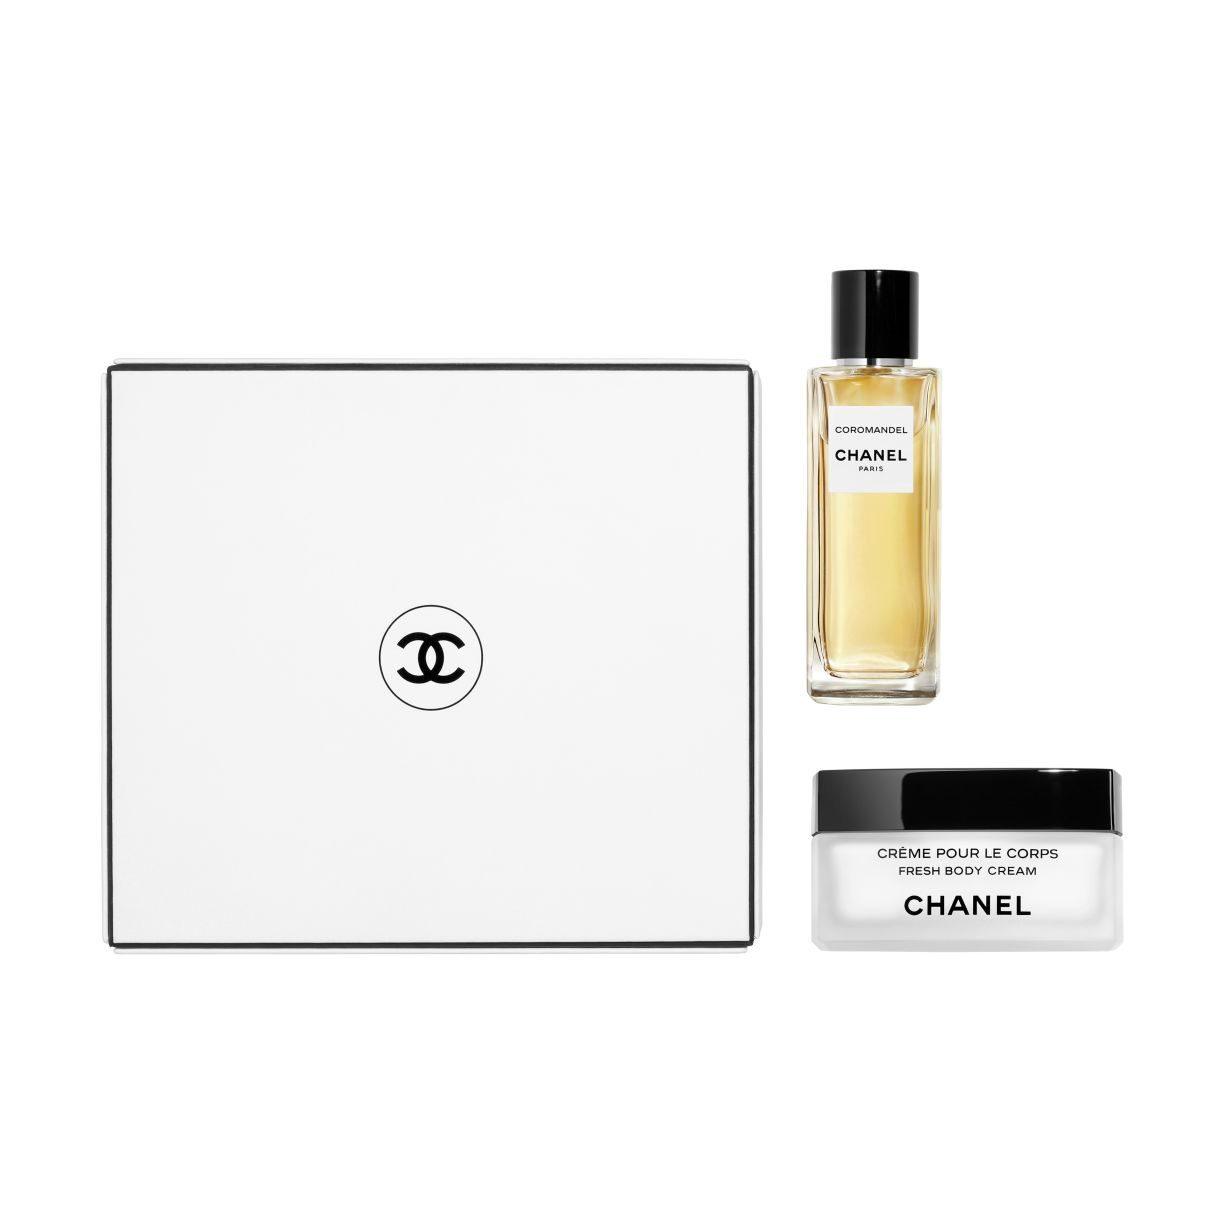 COROMANDEL LES EXCLUSIFS DE CHANEL - EAU DE PARFUM 75 ML AND FRESH BODY CREAM COFFRET 1pce